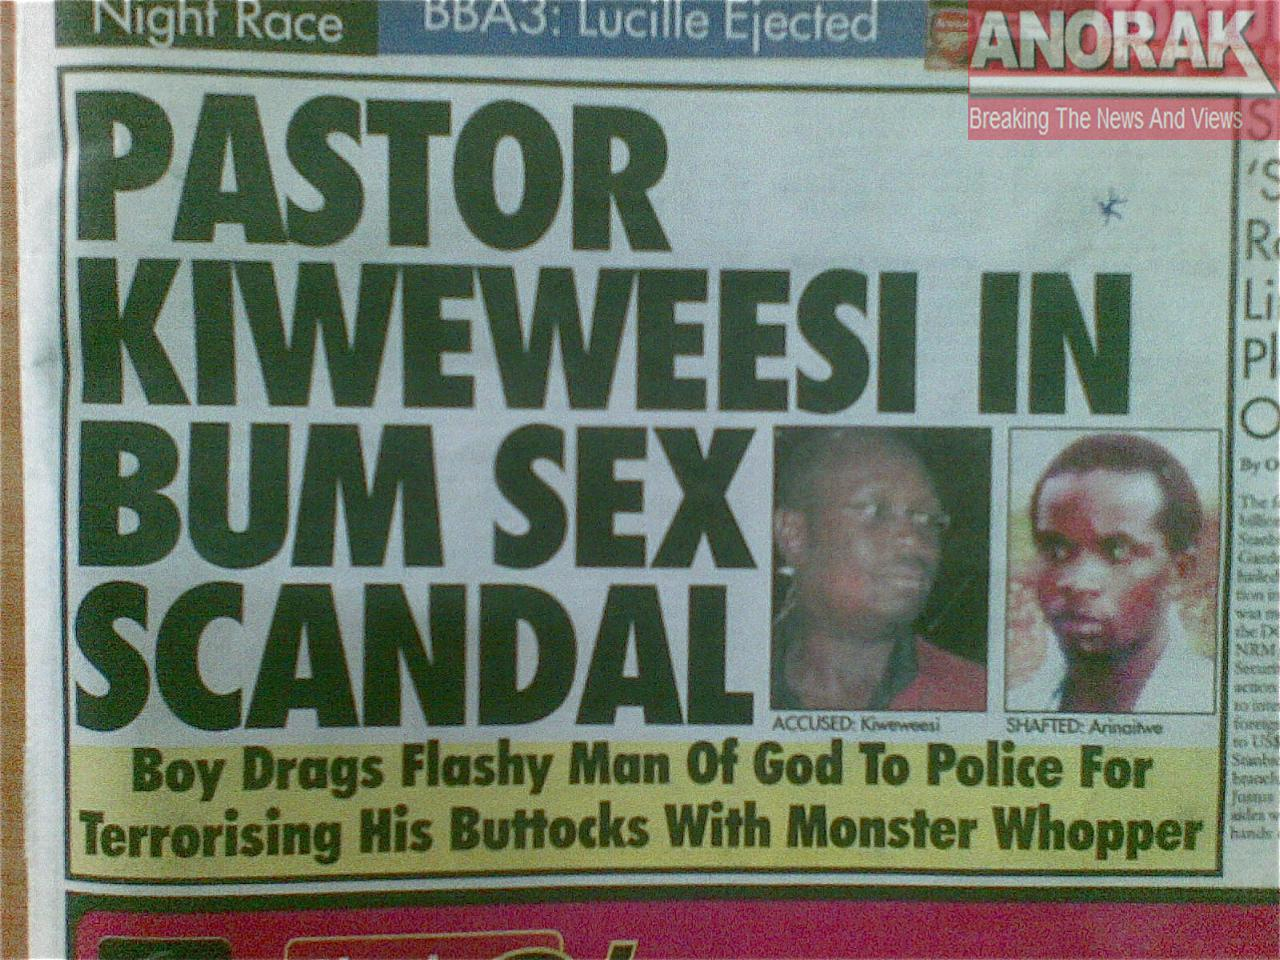 Ugandan Pastor Kiweweesi, aka Pastor Kiwewesi, In Bum Sex Scandal - Boy Drags Flashy Man Of God To Police For Terrorising His Buttocks With Monster Whopper